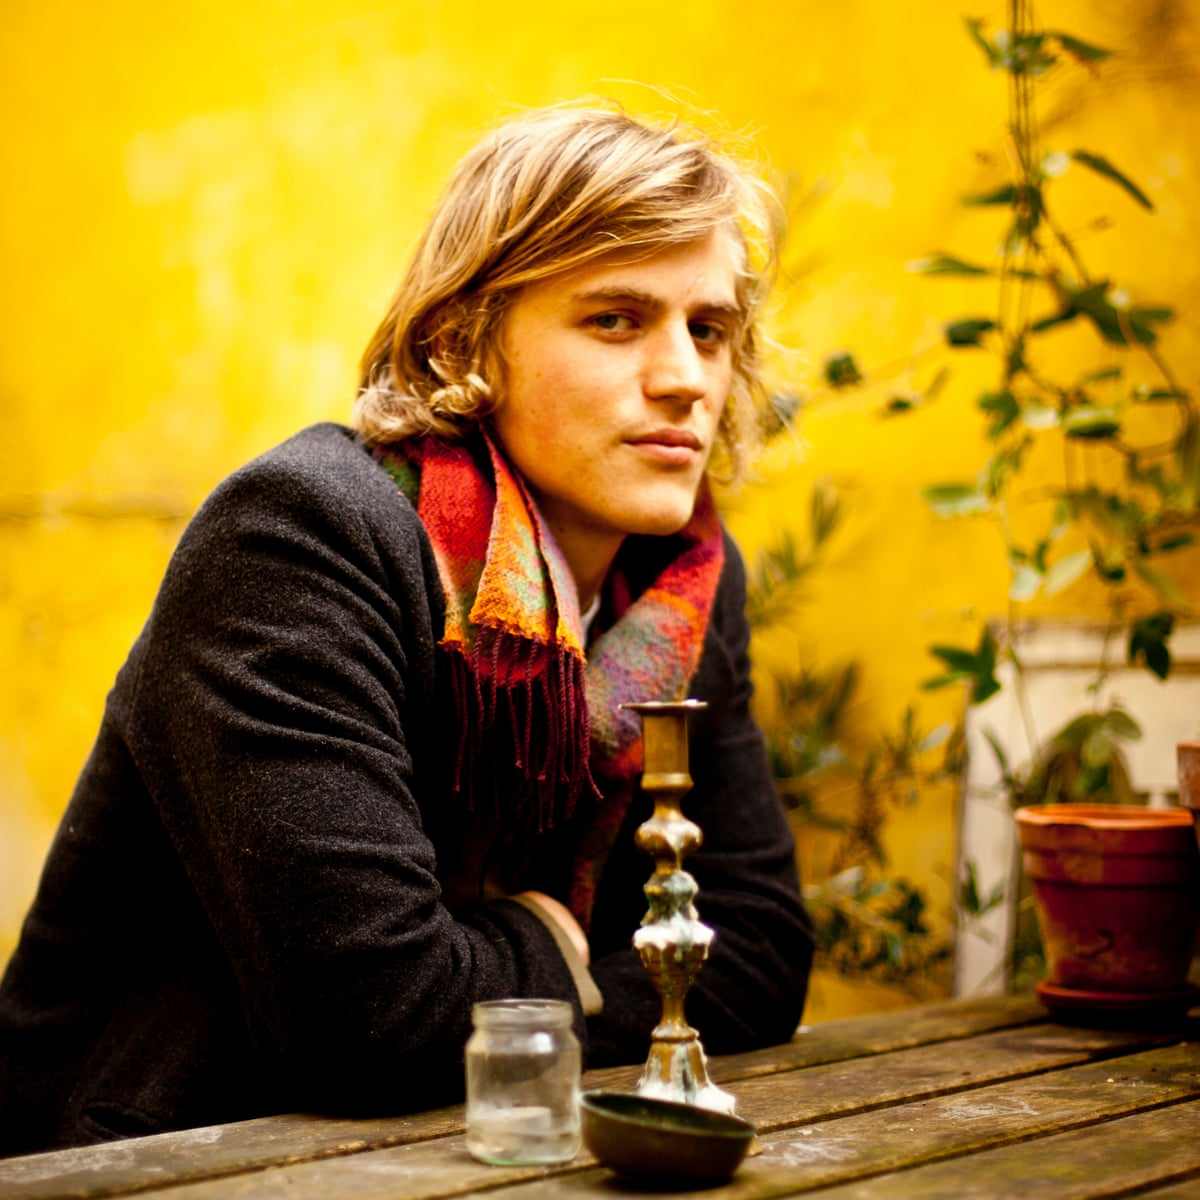 Blond Ambition The Rise And Rise Of Johnny Flynn A Man For All Seasons Johnny Flynn The Guardian